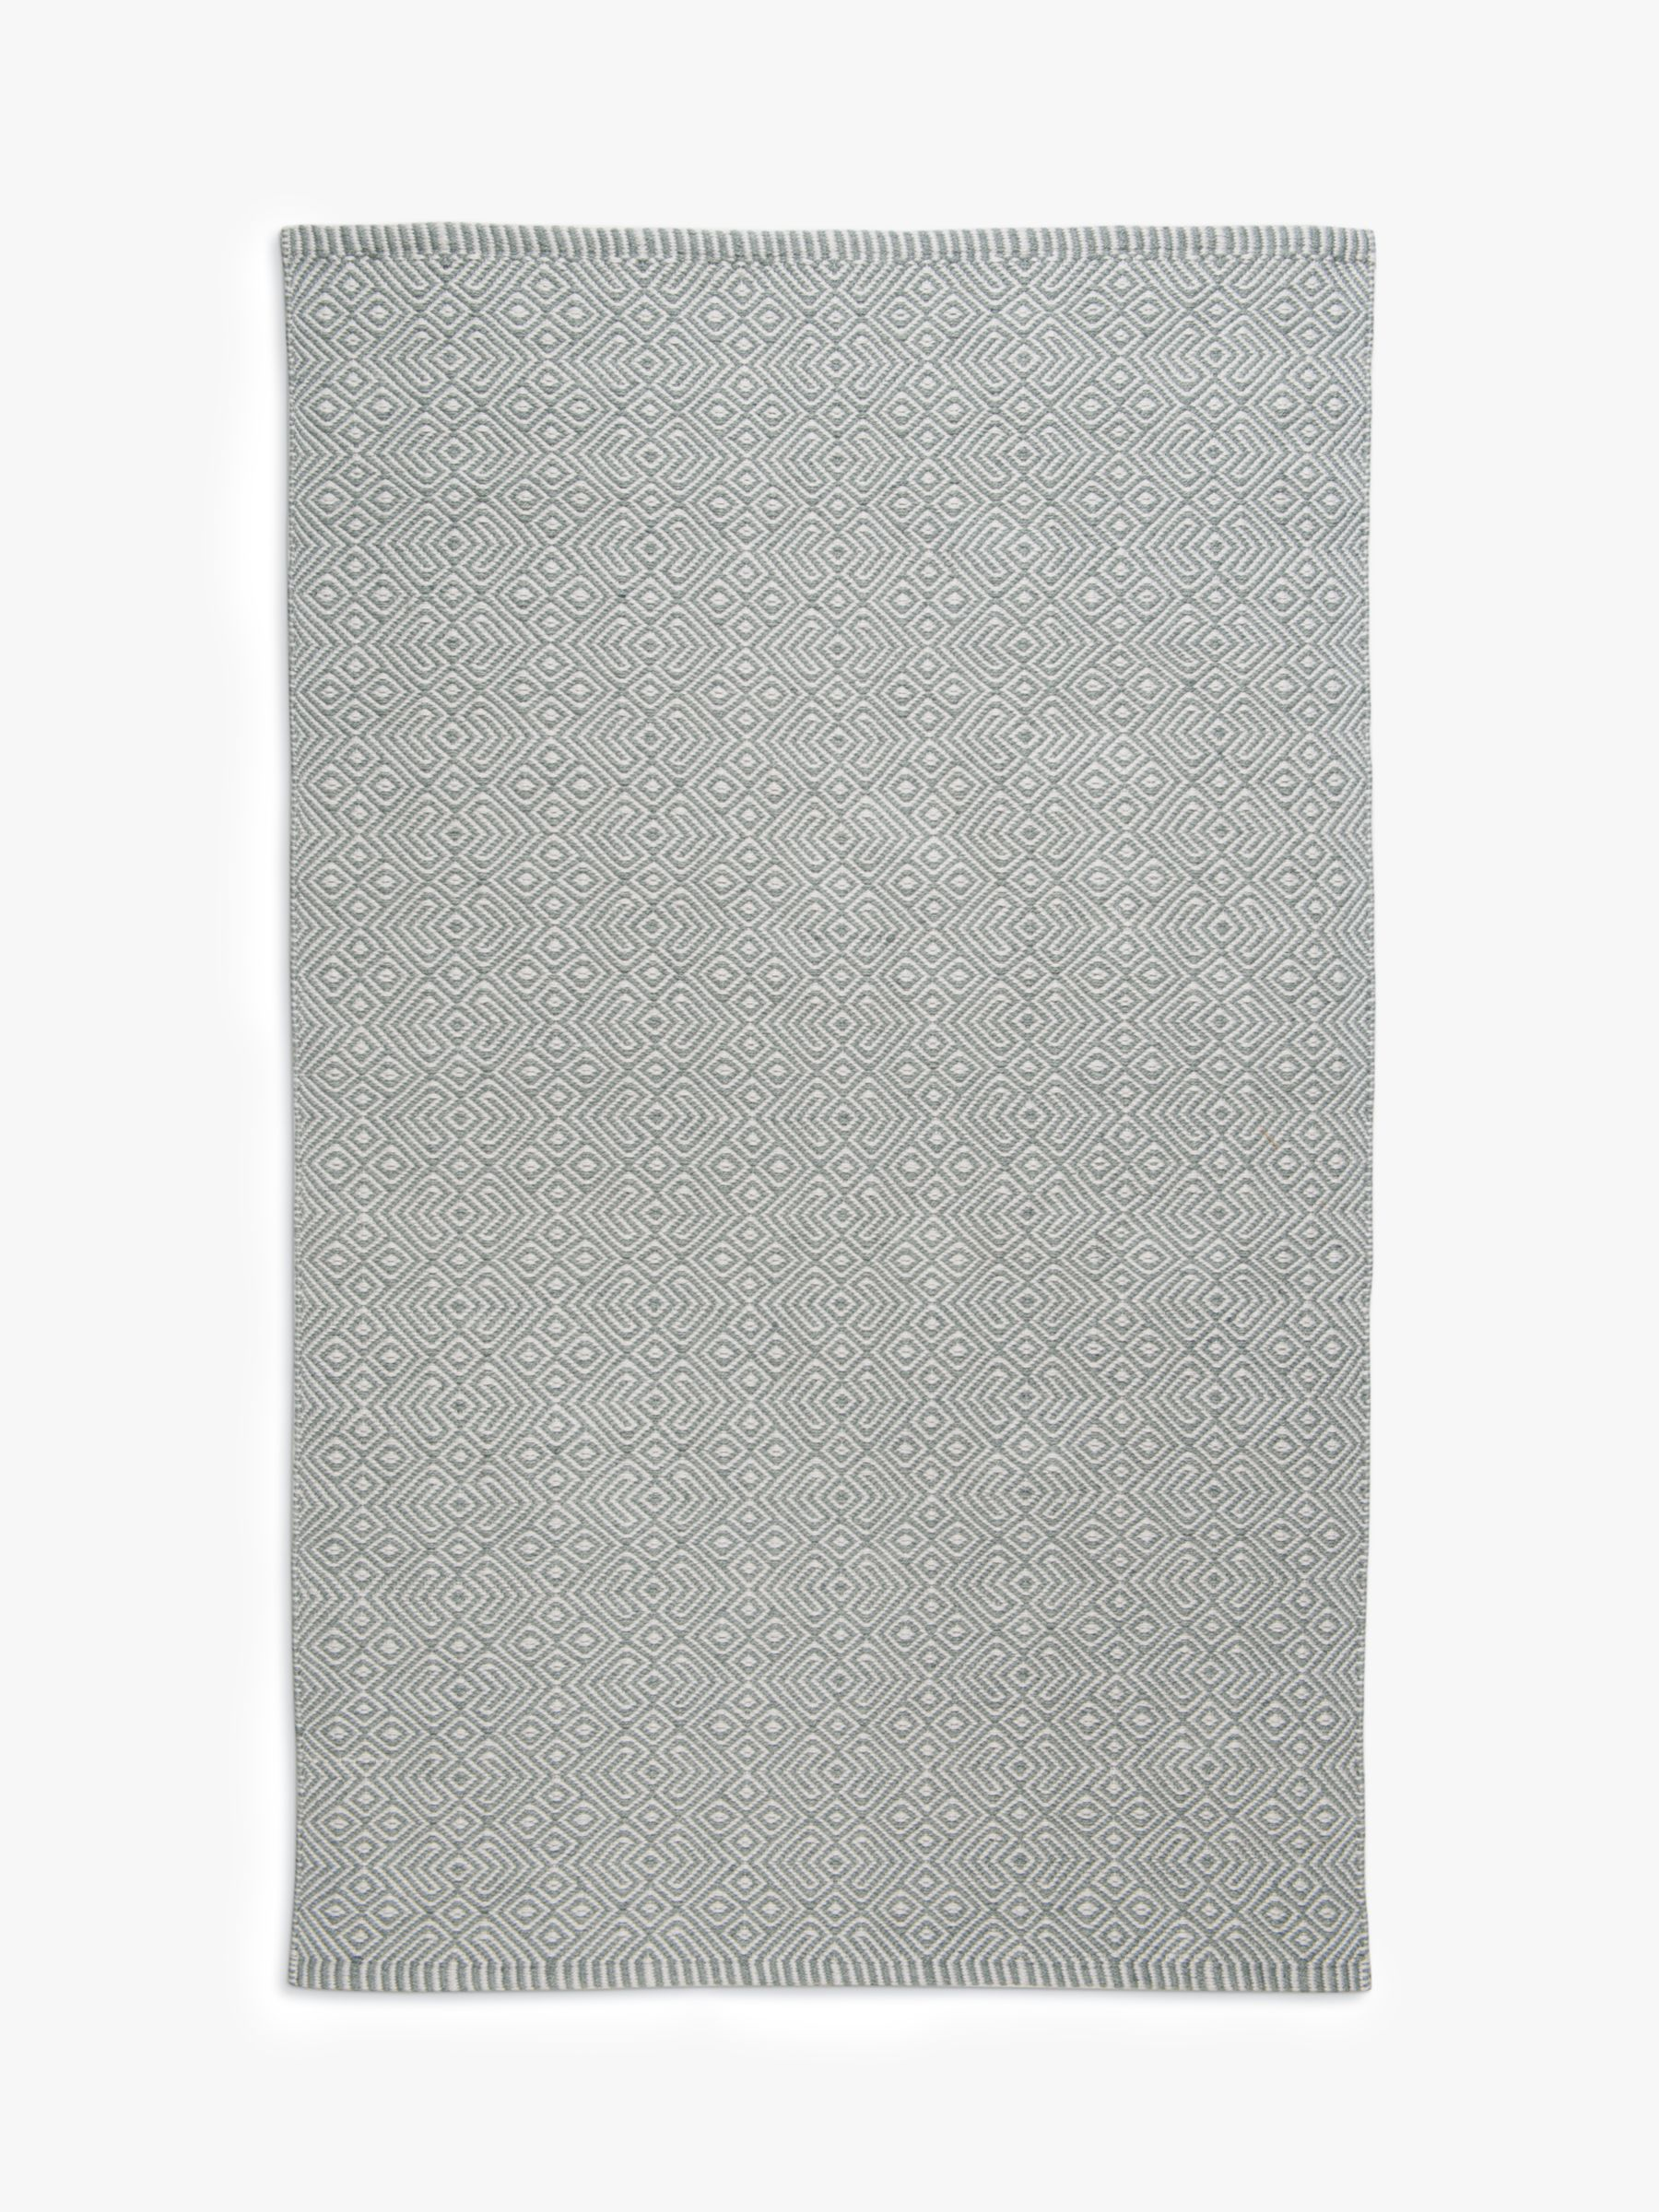 Weaver Green Provence Recycled Plastic Indoor & Outdoor Rug, L240 x W170 cm